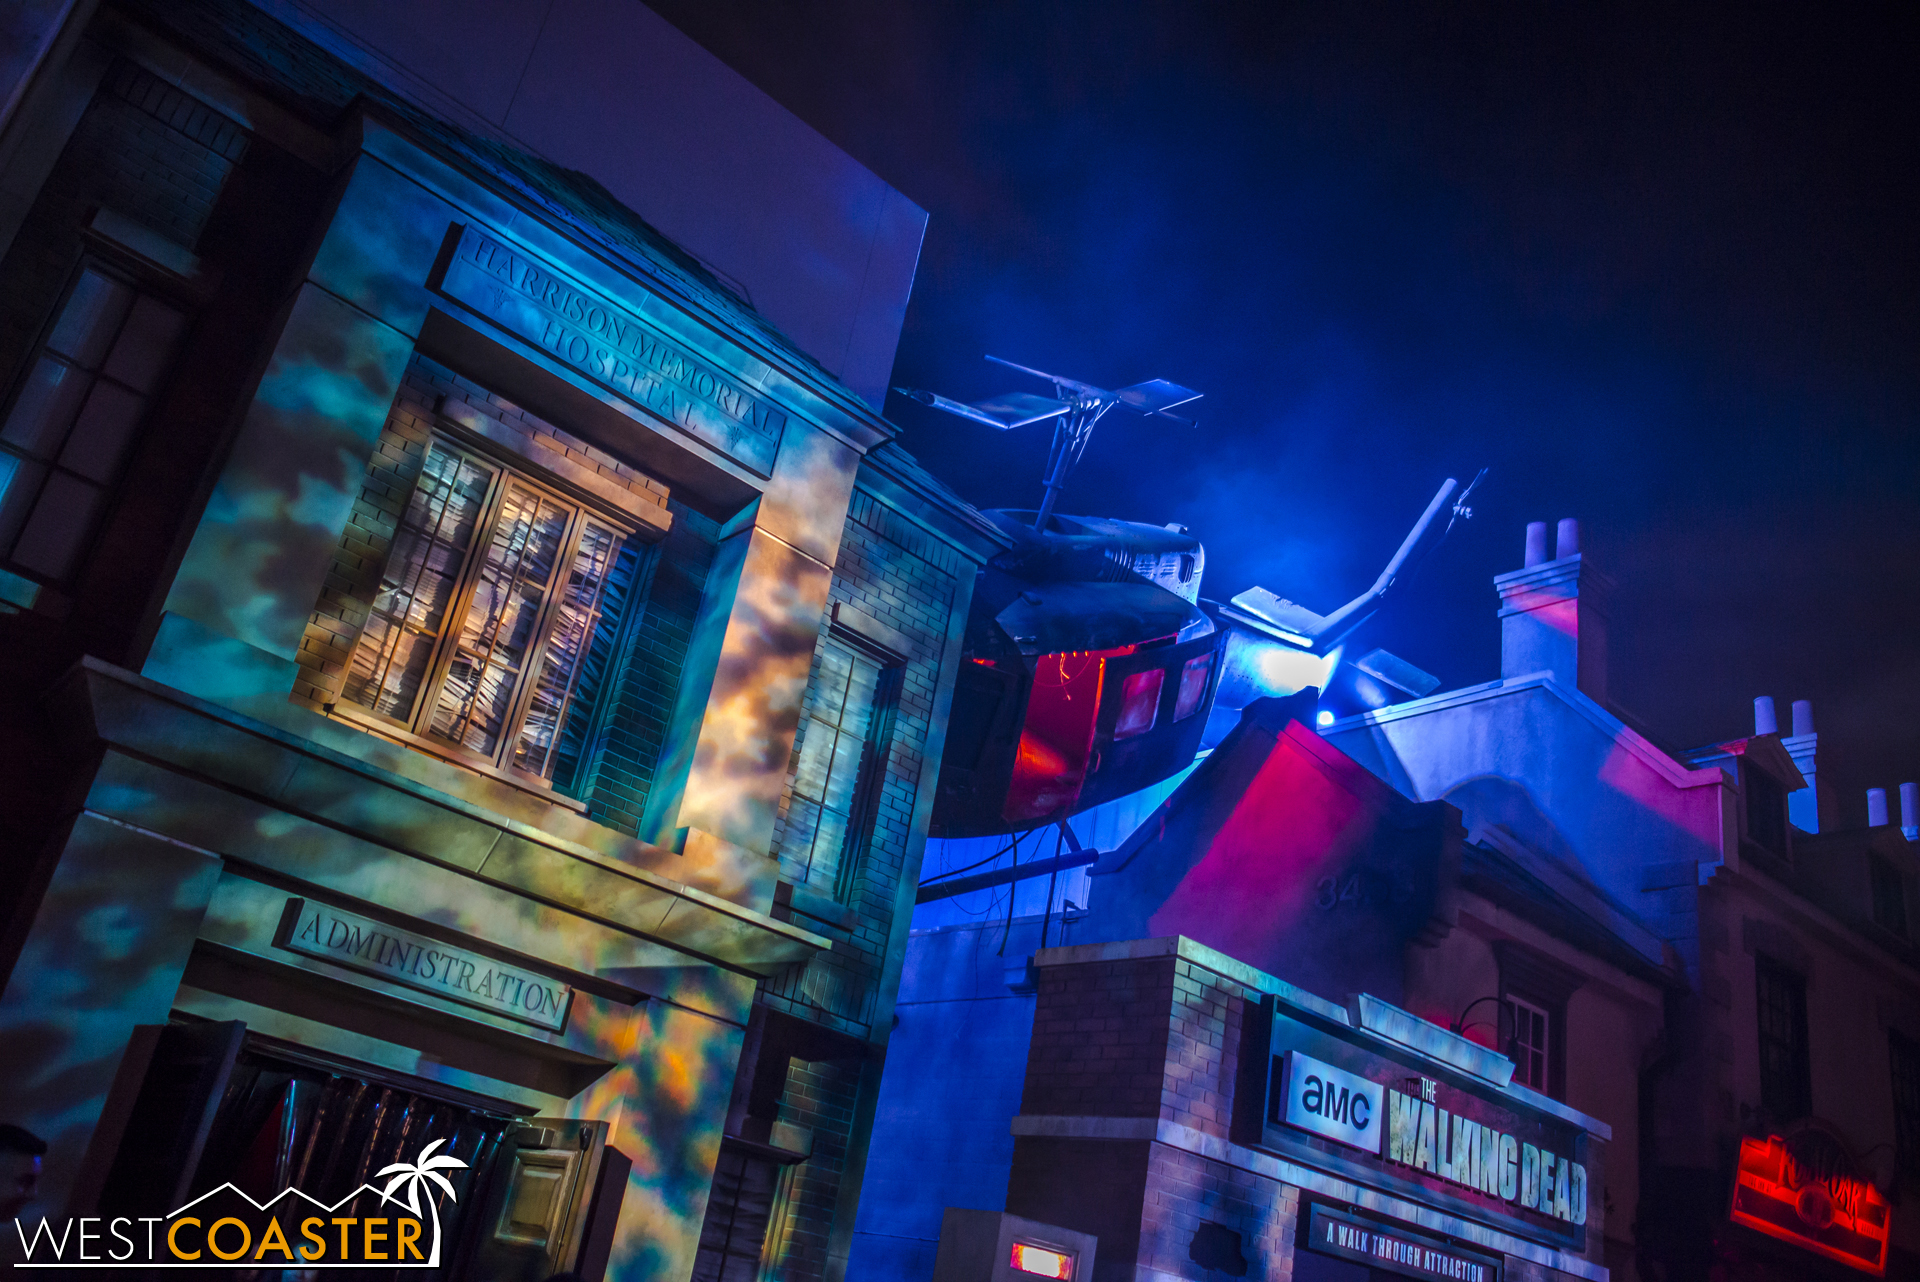 The Walking Dead Attraction is located just left of the Universal Plaza, right after the main boulevard in.